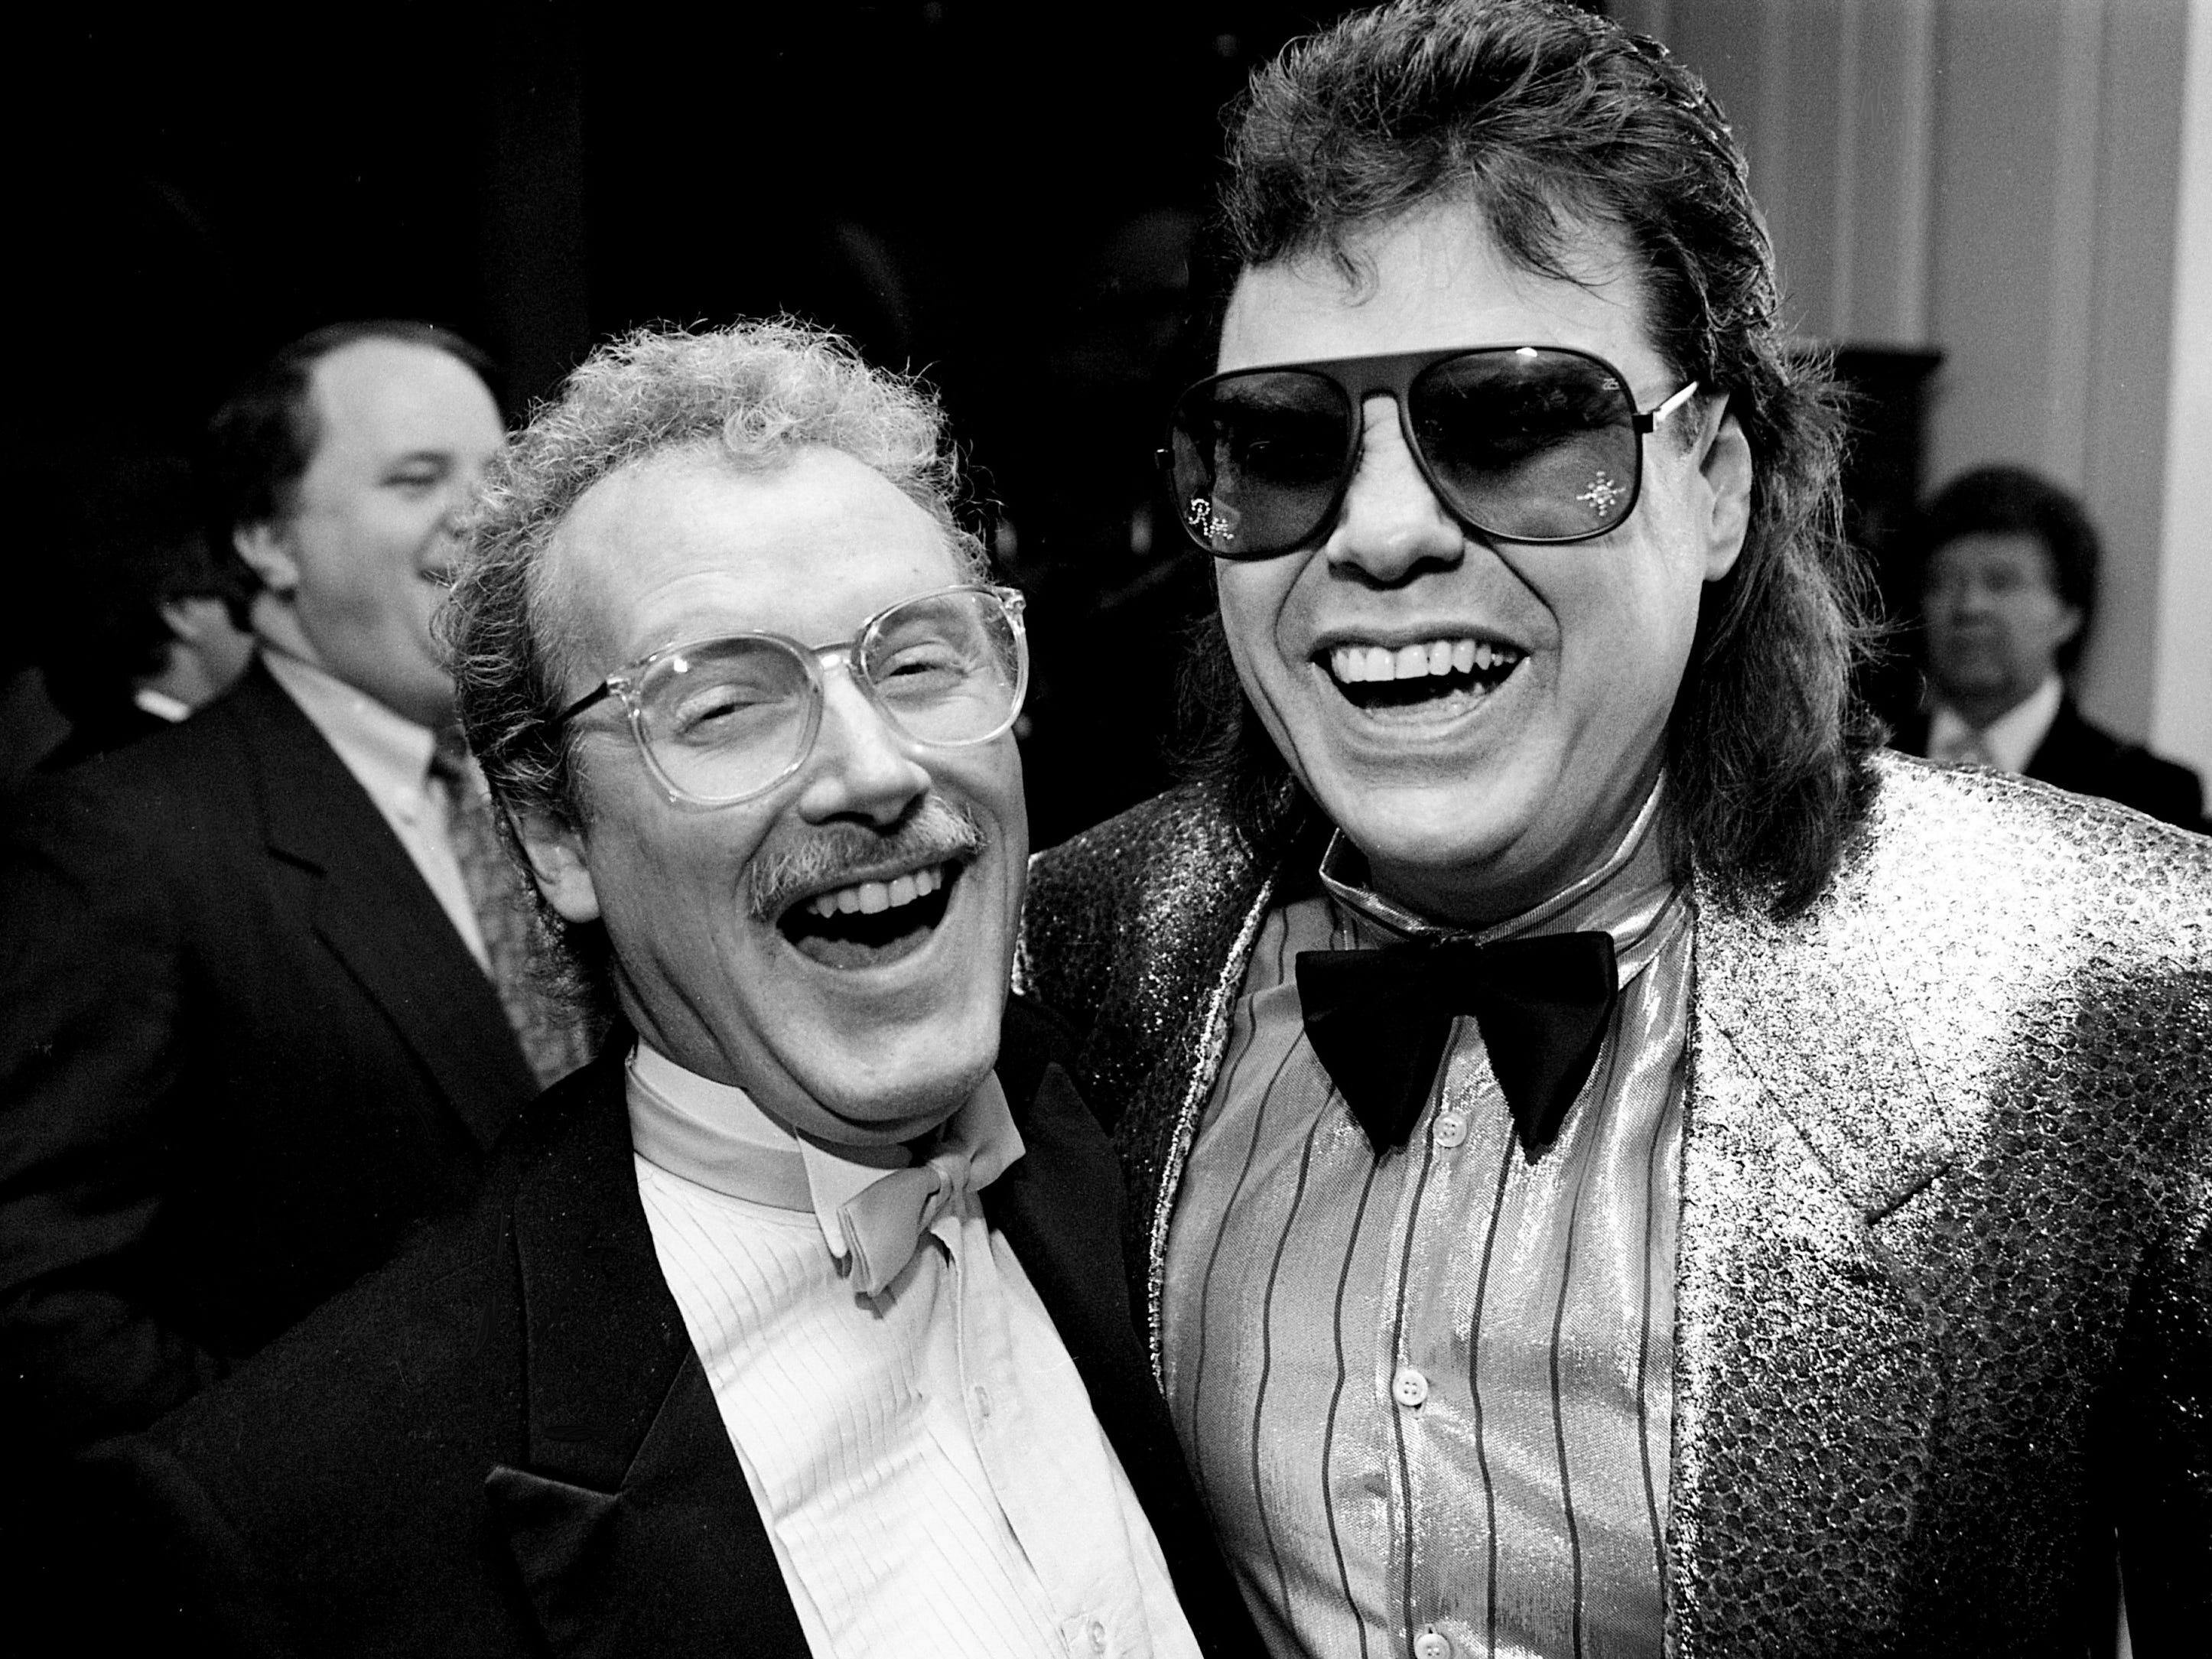 Tennessean music reporter Bob Oermann, left, shares a moment with Ronnie Milsap during the 25th annual ASCAP Country Music Awards ceremony at Opryland Hotel's Presidential Ballroom on Oct. 14, 1987.